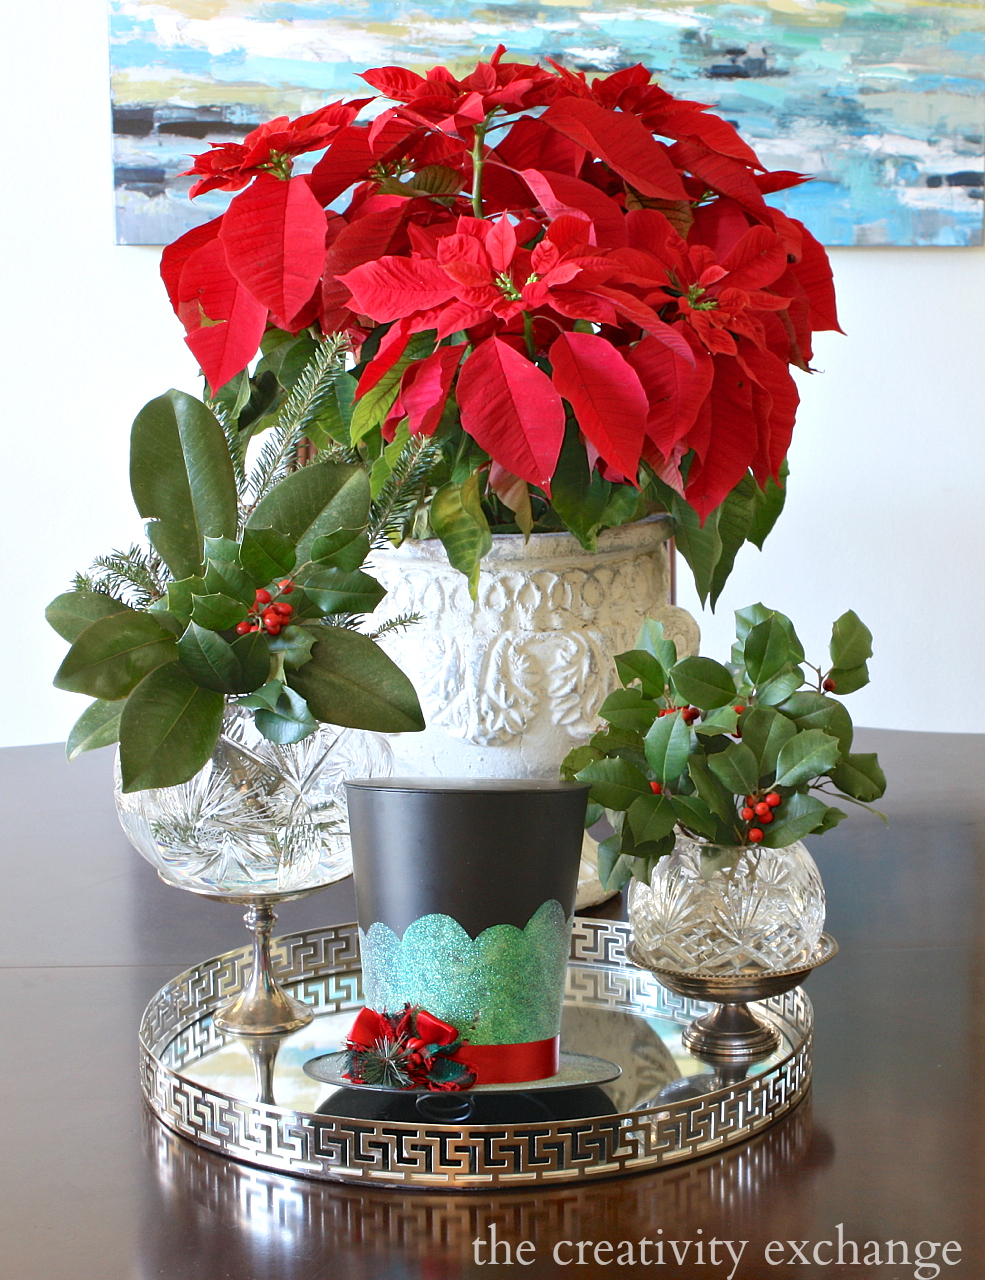 Christmas Centerpiece using fresh holly, pointsettia and top hat tree topper. The Creativity Exchange Christmas Home Tour